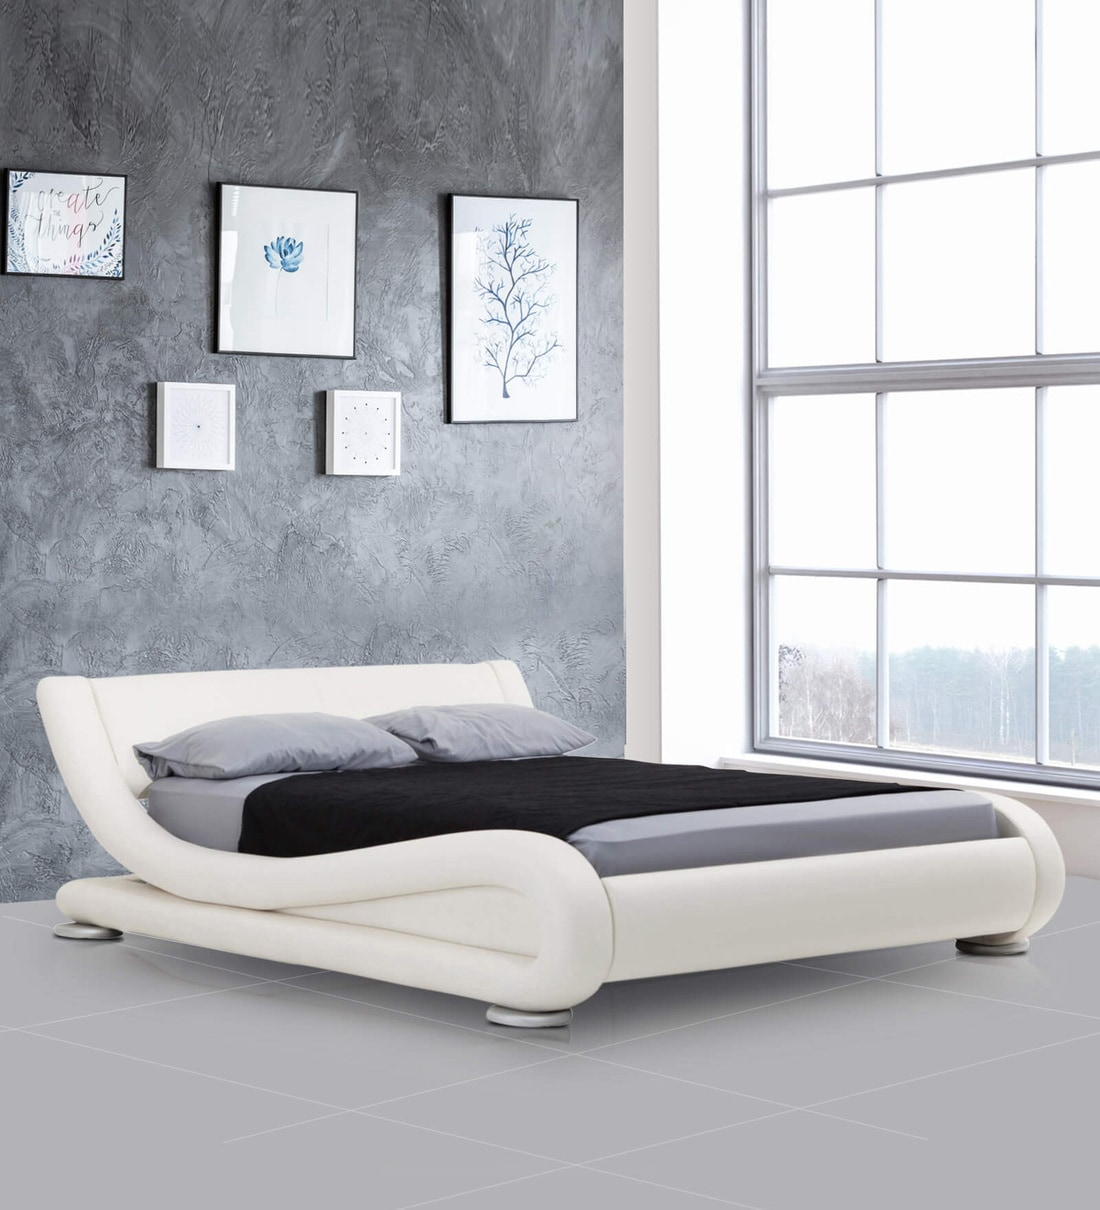 Buy Savvy Queen Size Upholstered Bed In White Colour By Dreamzz Furniture Online Queen Size Upholstered Beds Beds Furniture Pepperfry Product